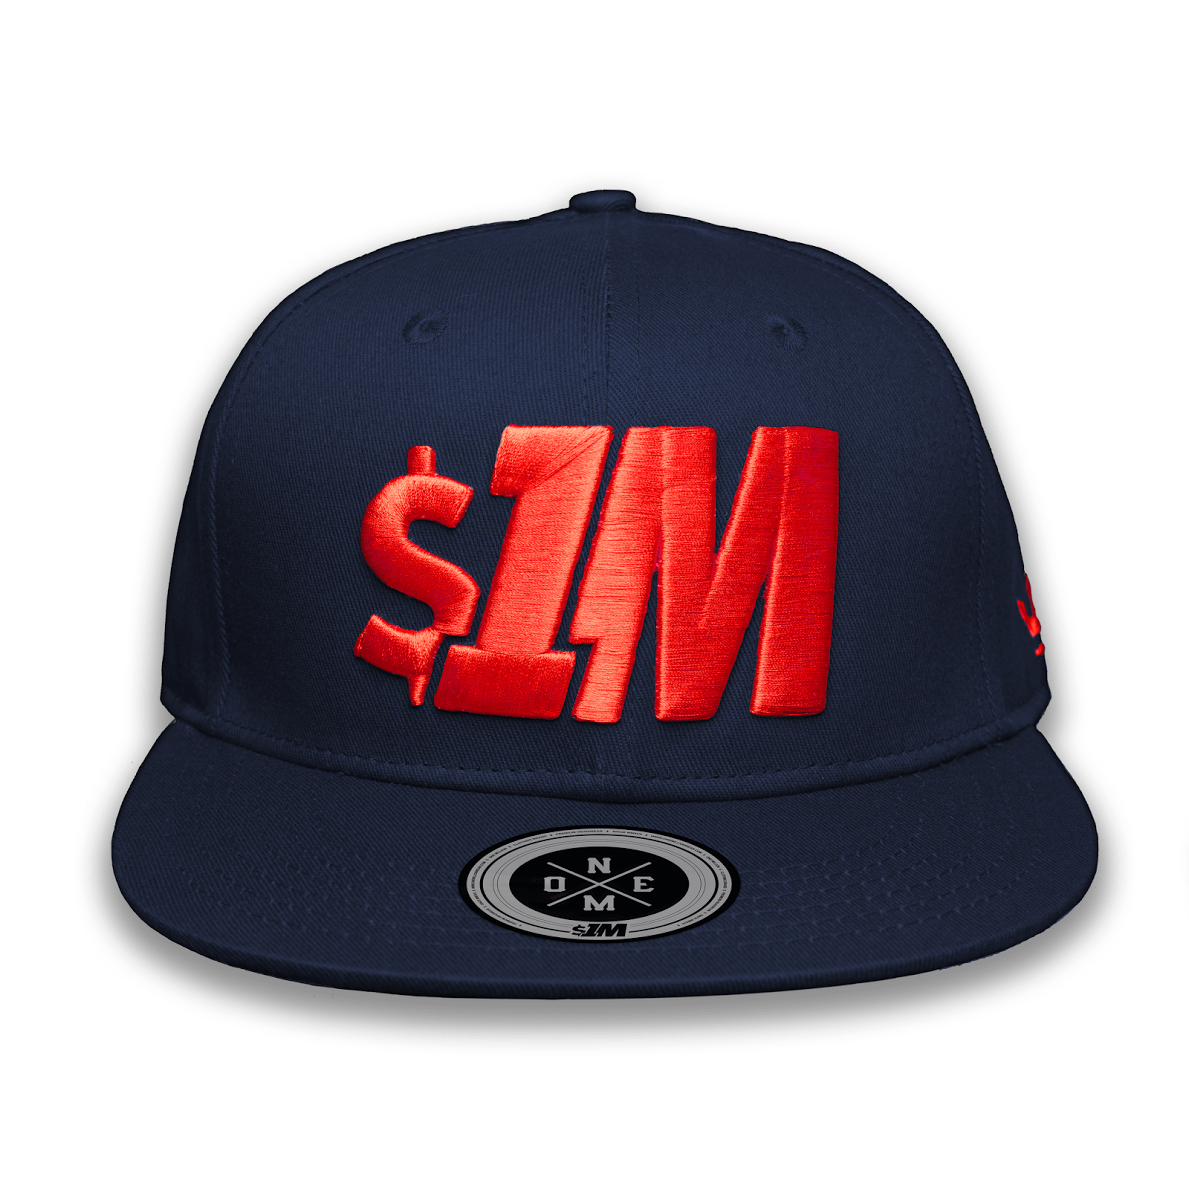 Gorra $1M Auténtica NavyBlue/Red - 1M Clothing Co.